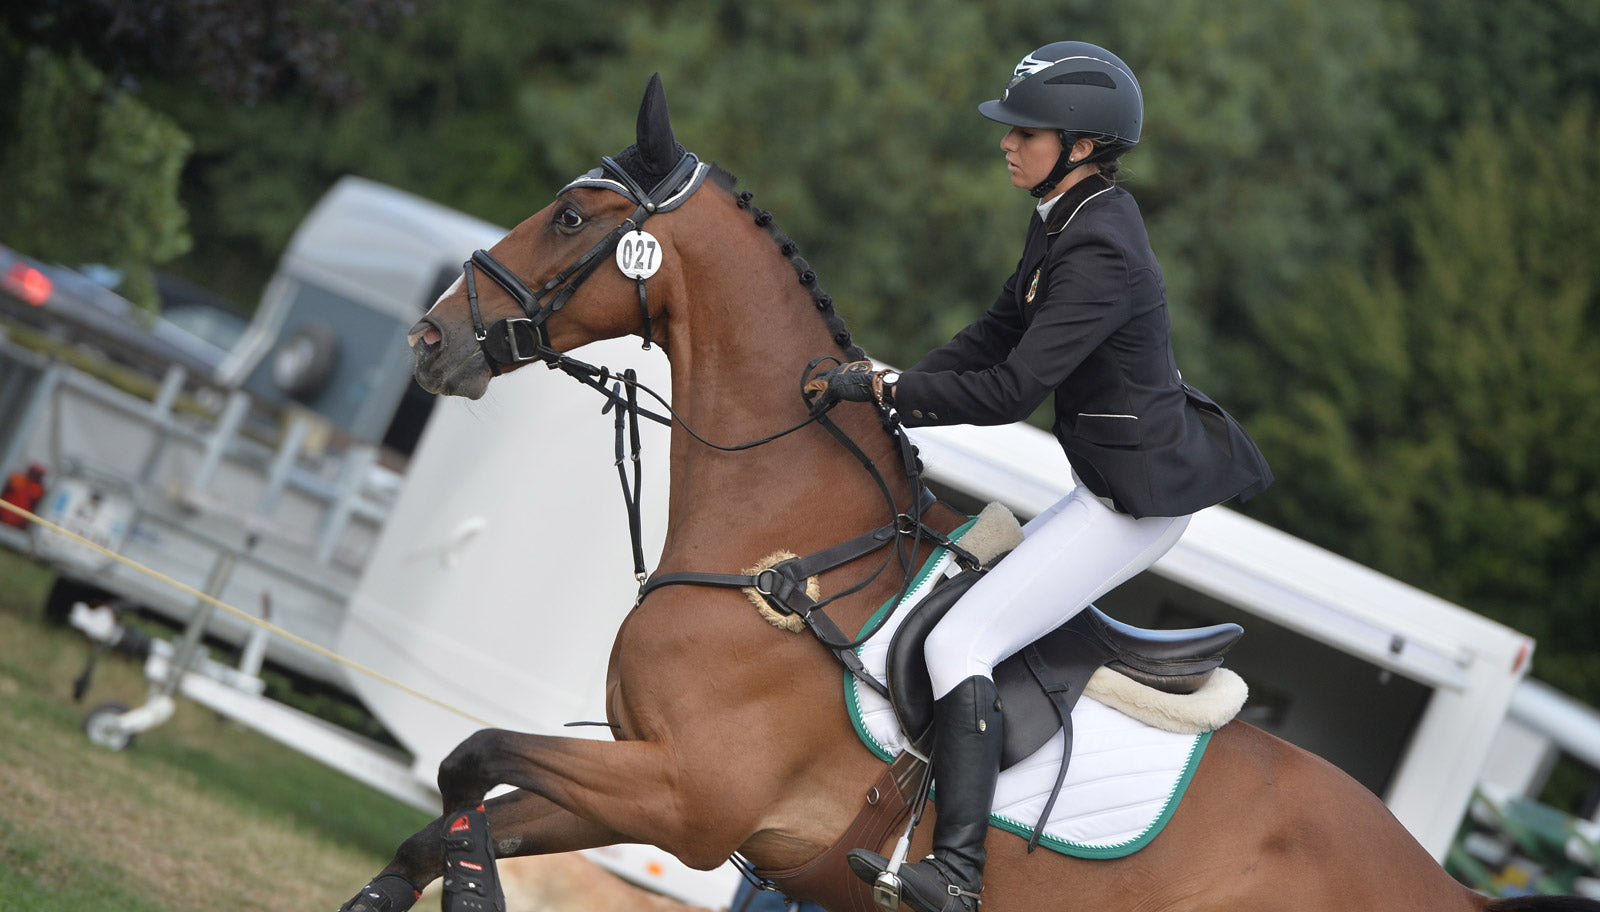 Woman in dressage dress jumping on a horse